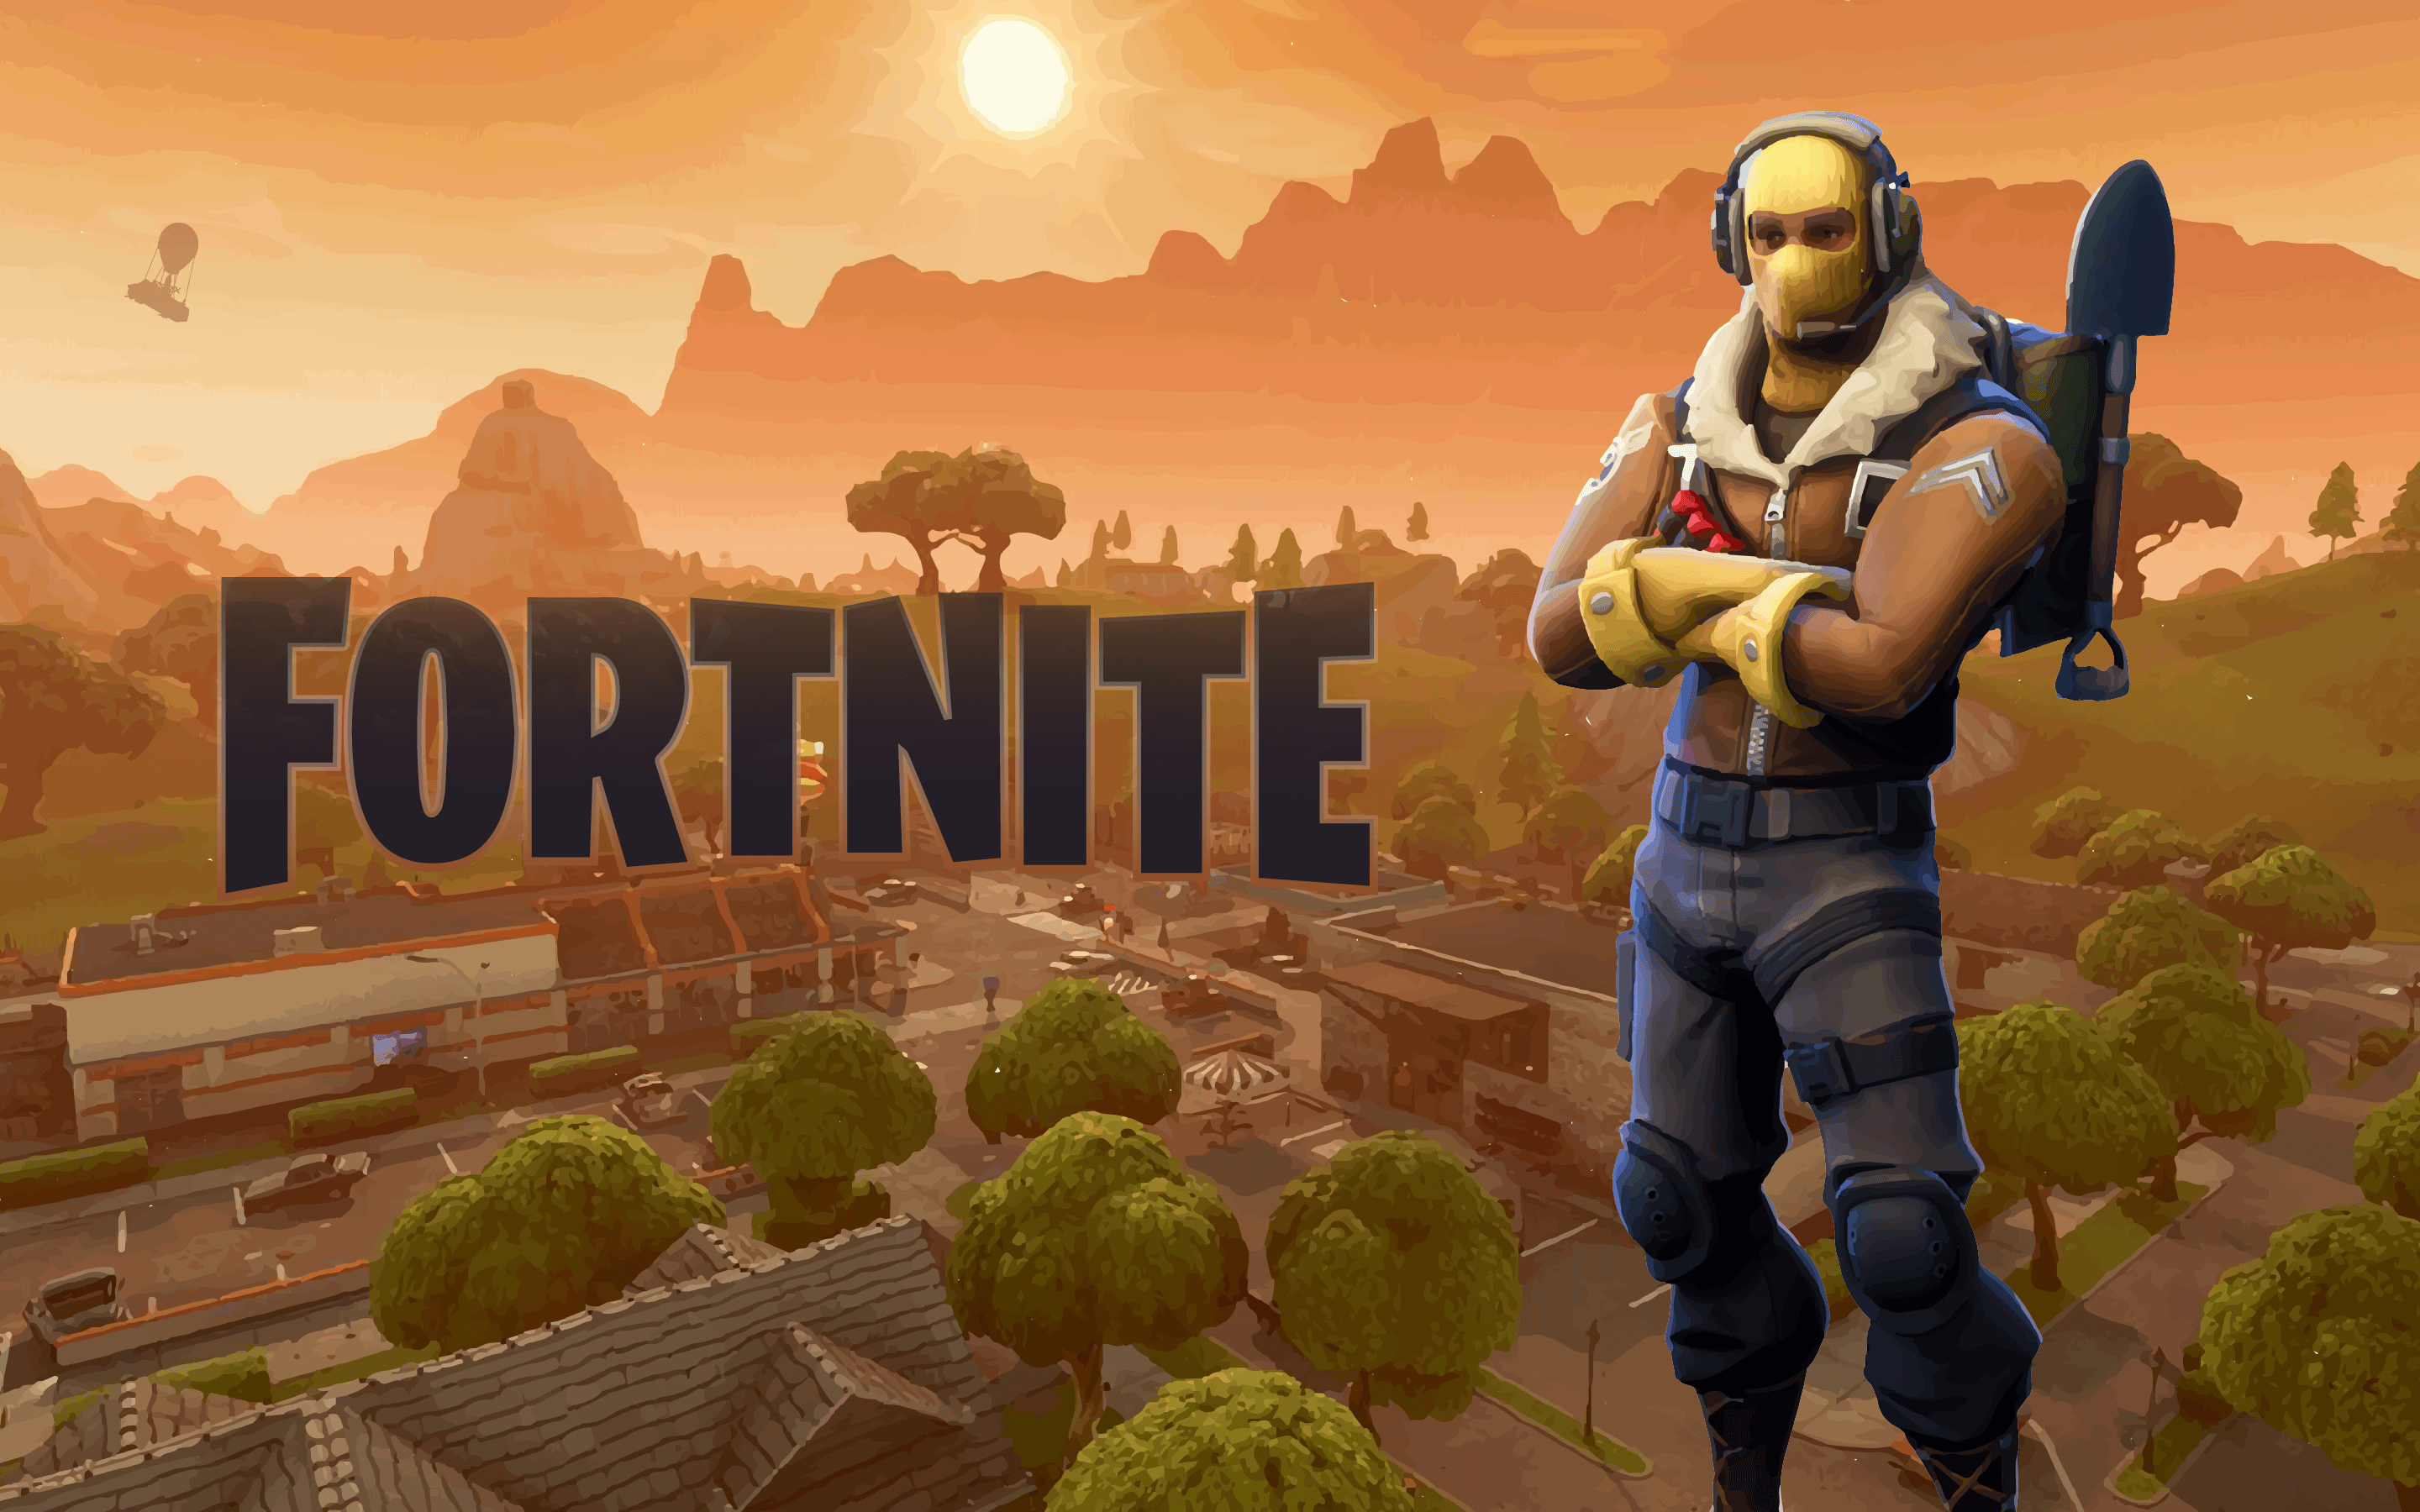 Fortnite Images 2048x1152 Best Dating